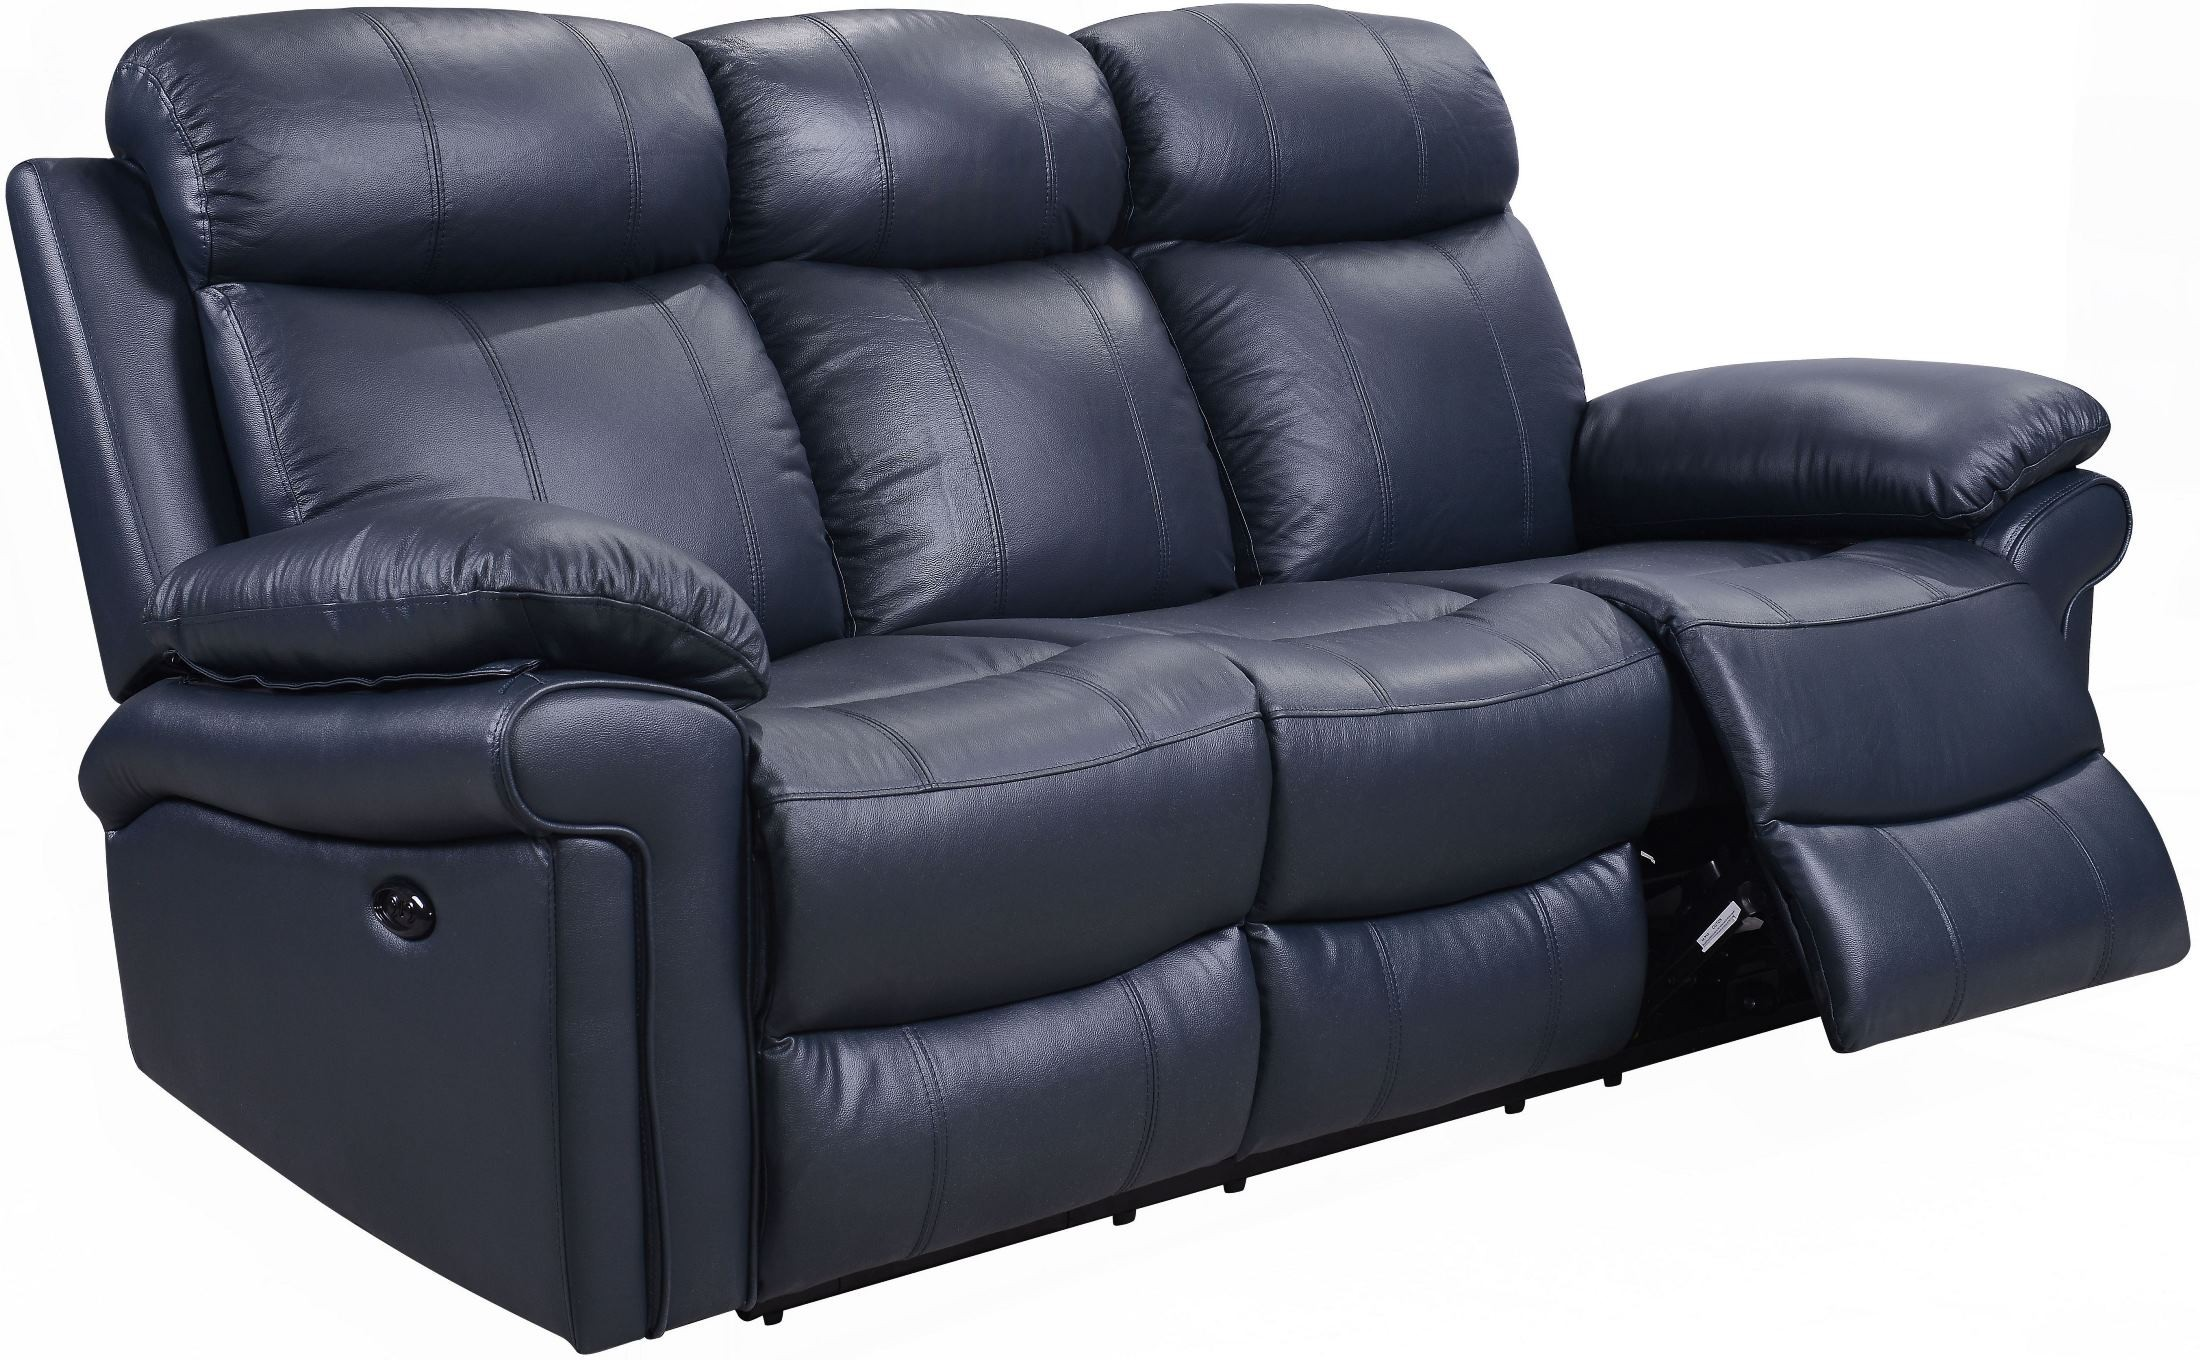 Shae Joplin Blue Leather Power Reclining Sofa From Luxe